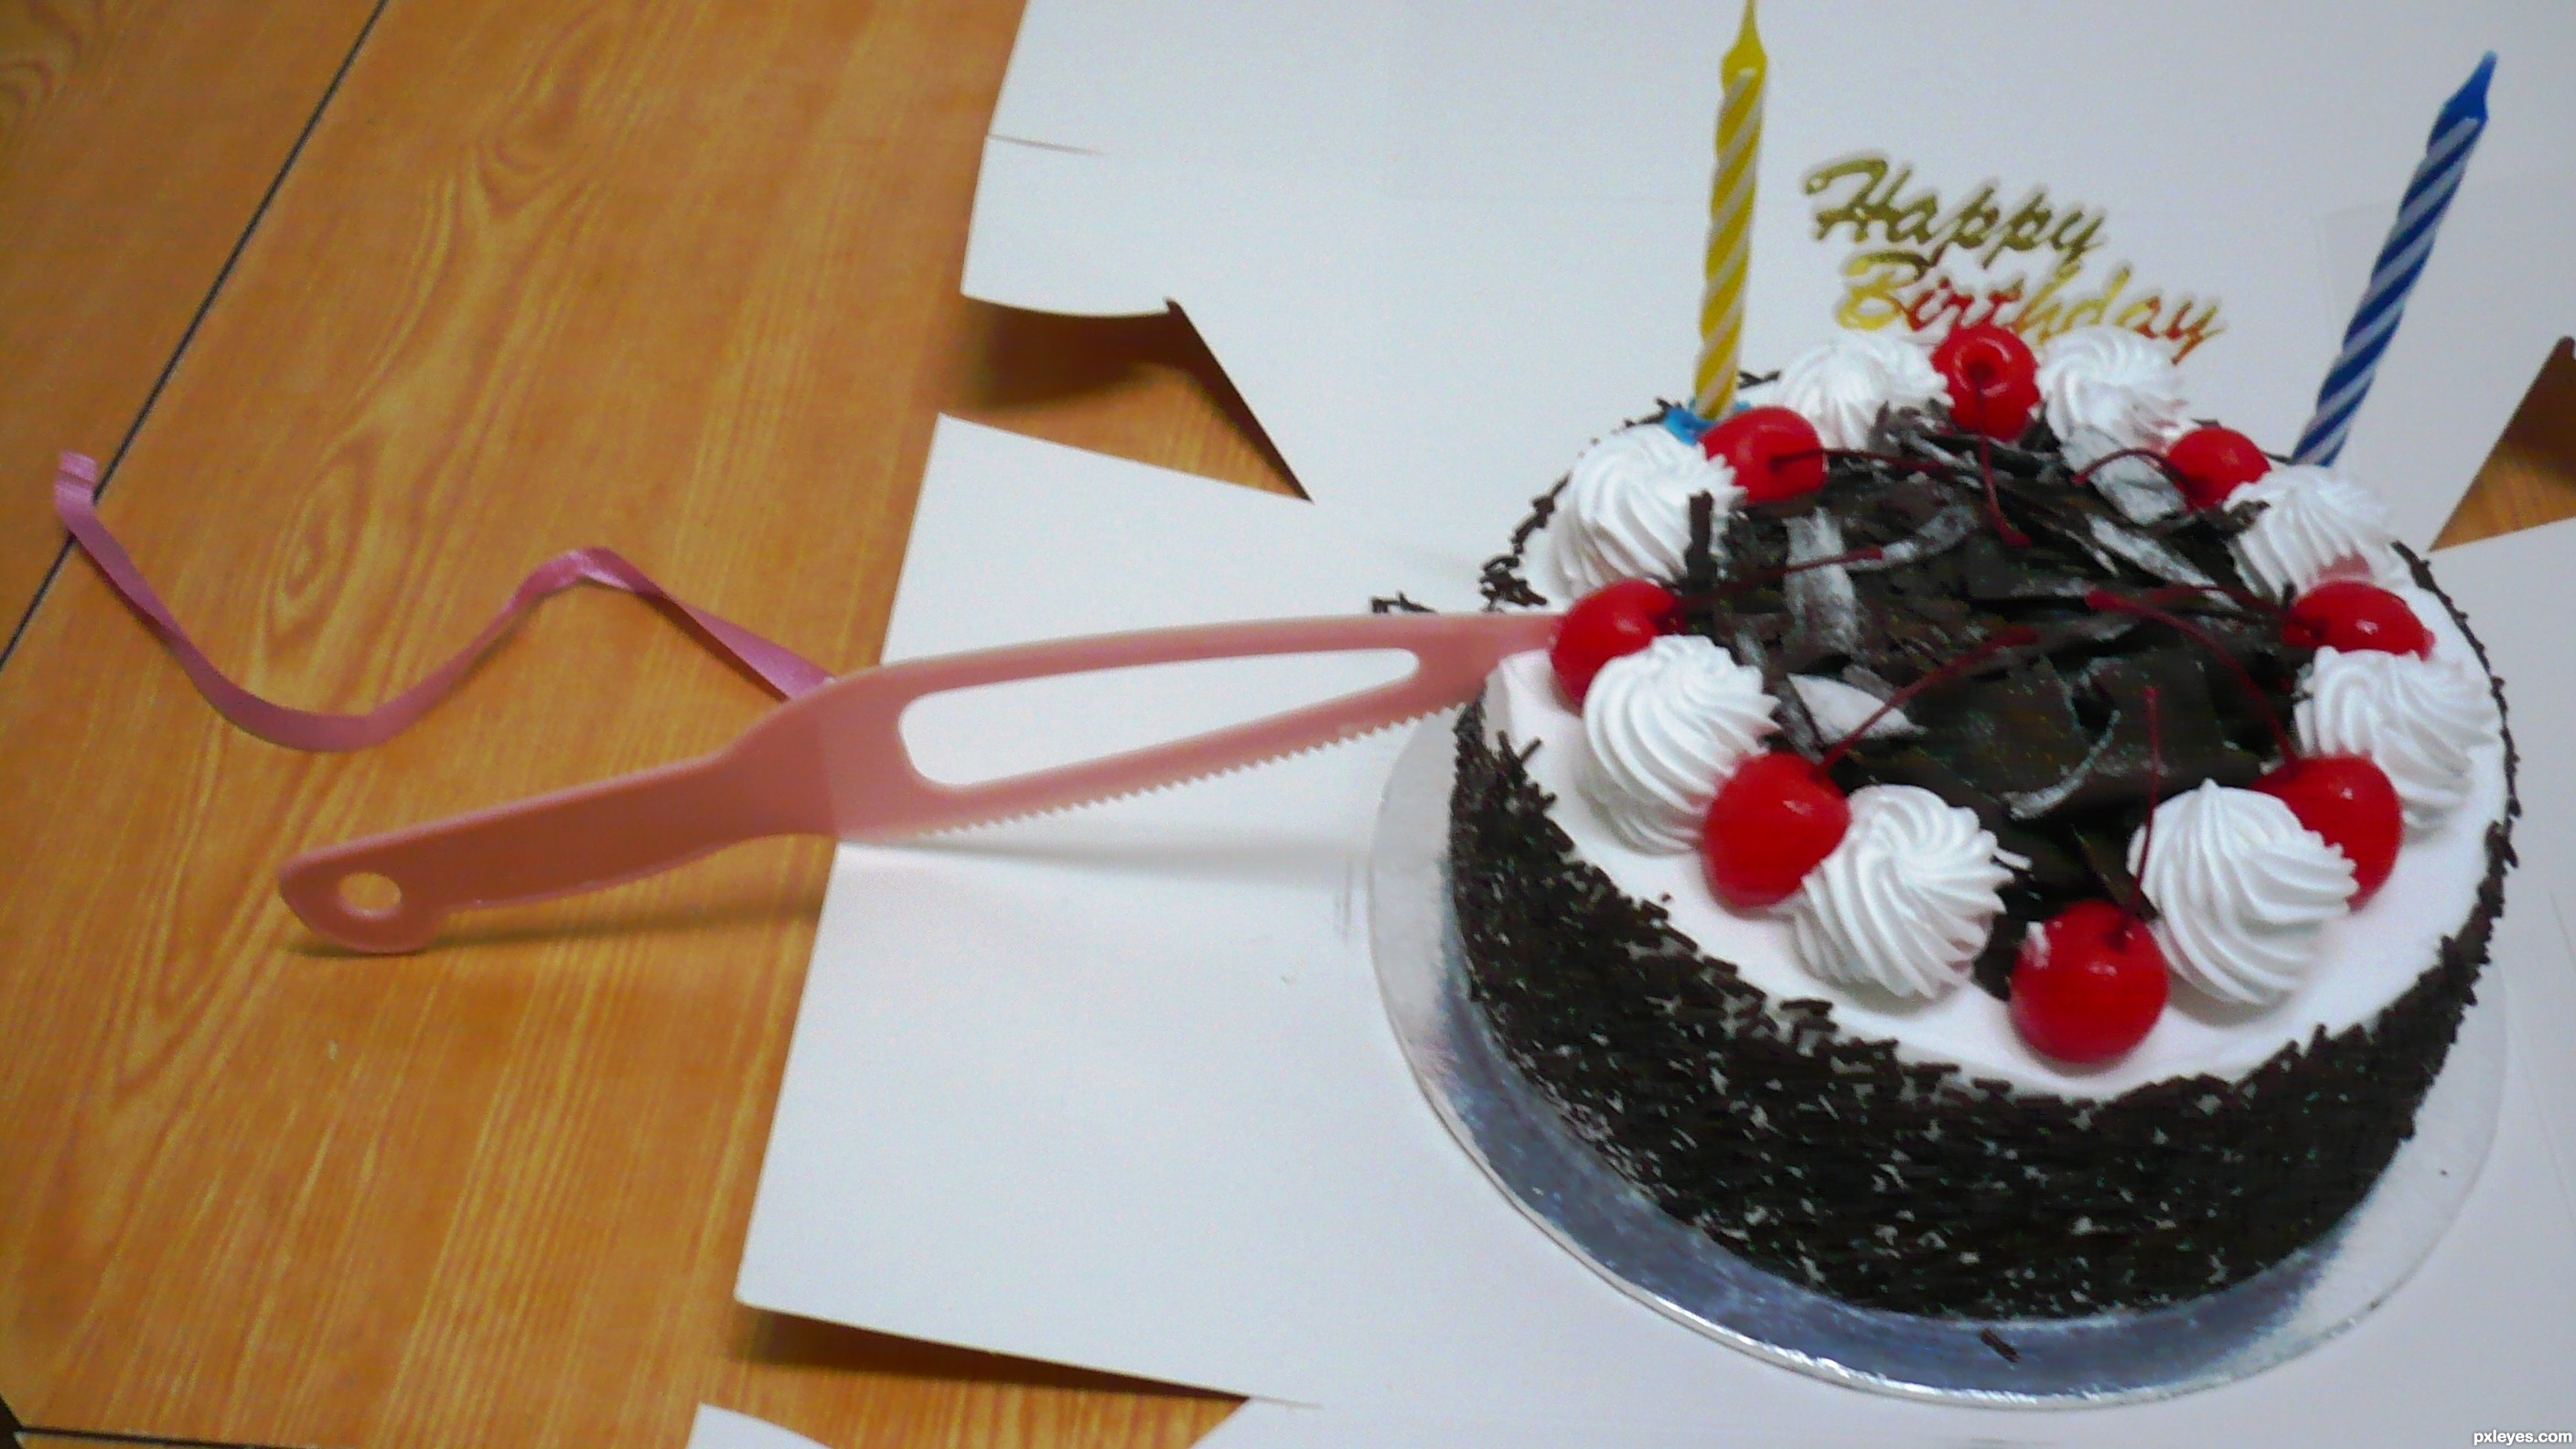 BIrthday cake! - created by LEEBAOREN